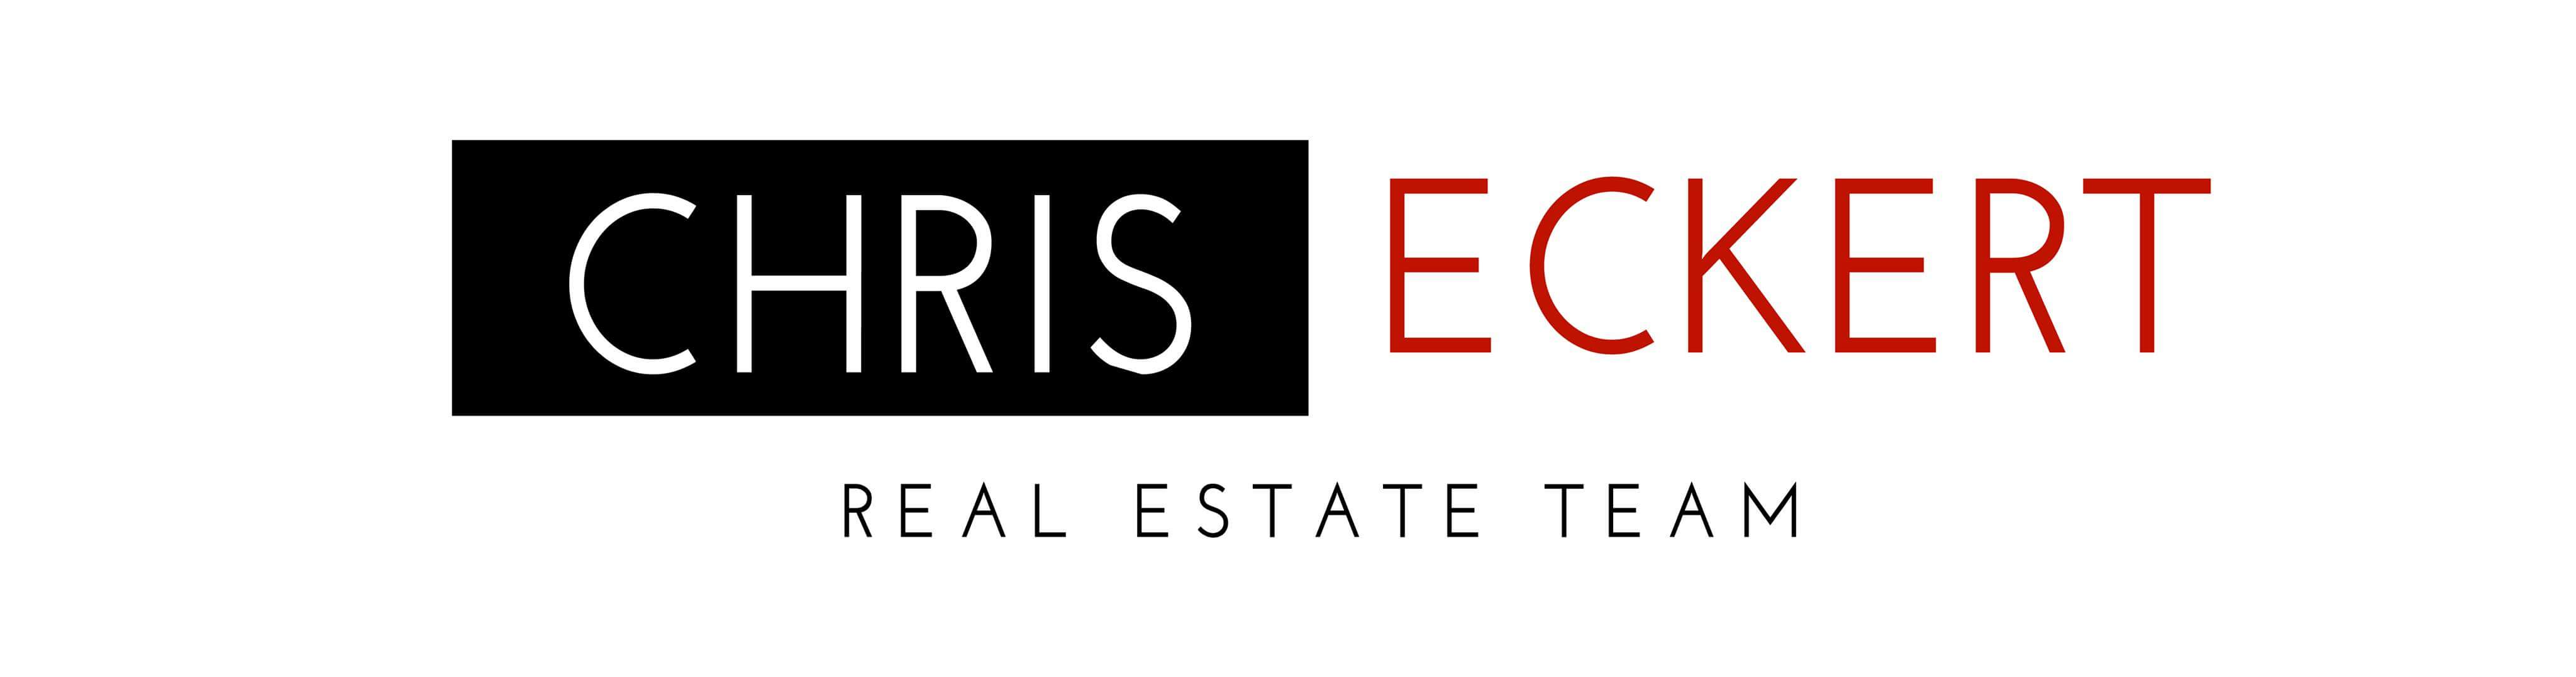 Chris Eckert Real Estate Team